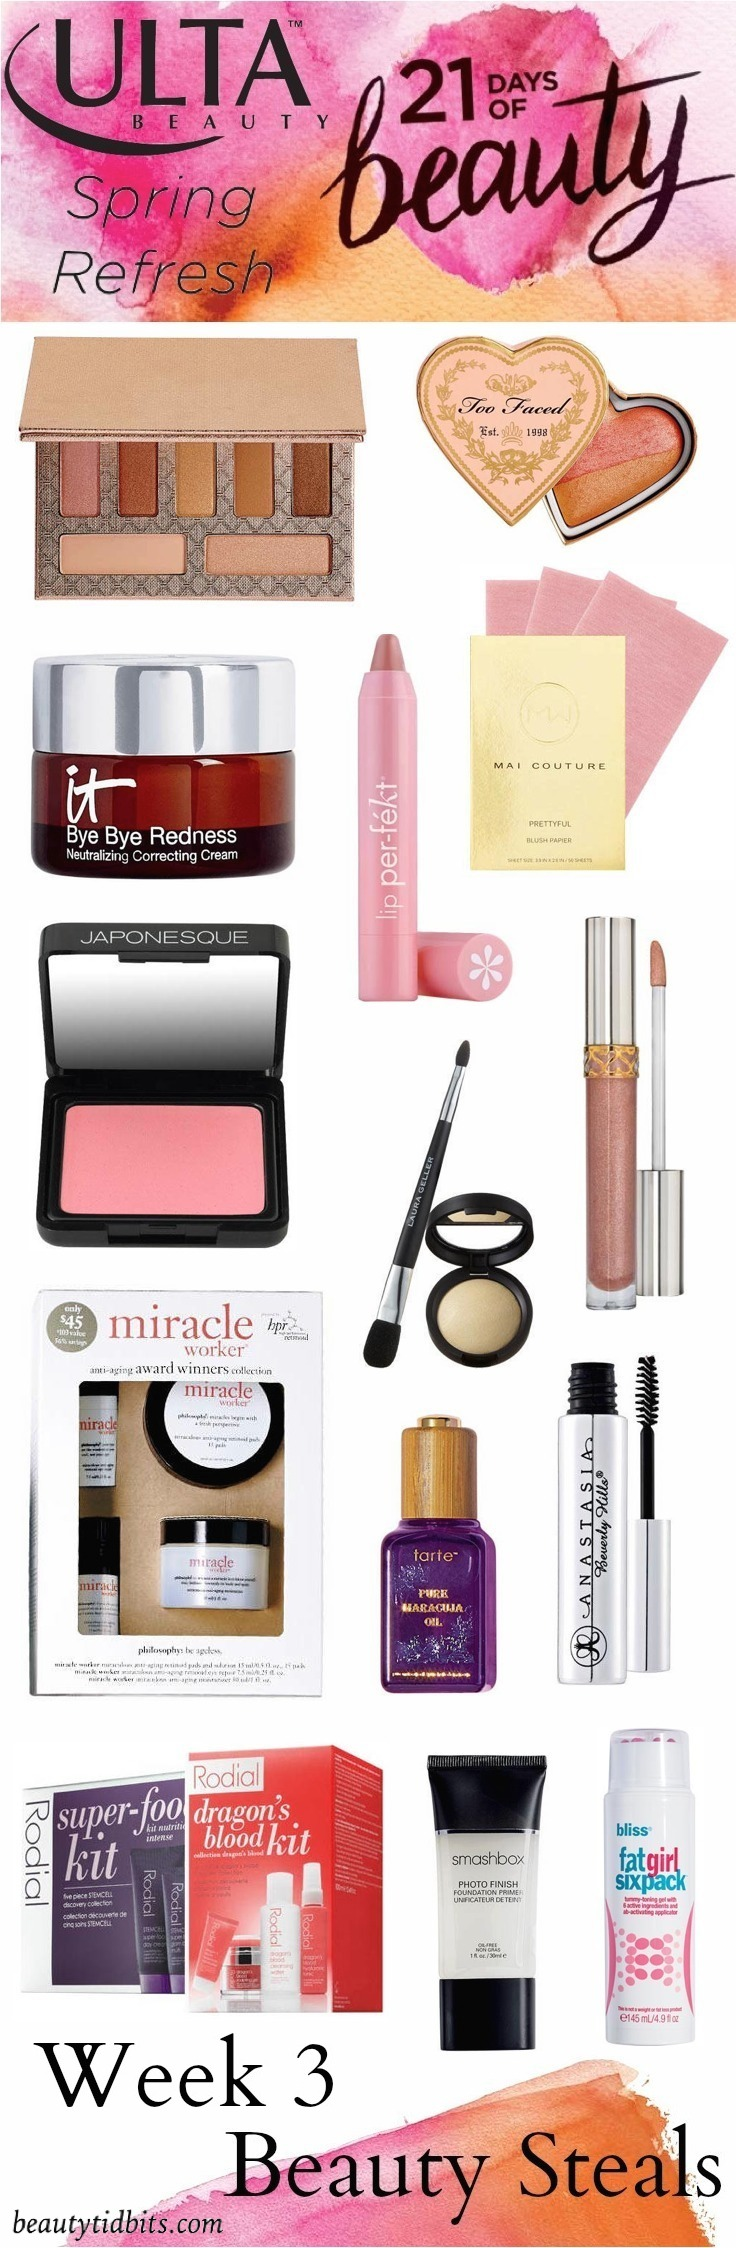 Ulta 21 days of Beauty - Week 3 Beauty Steals